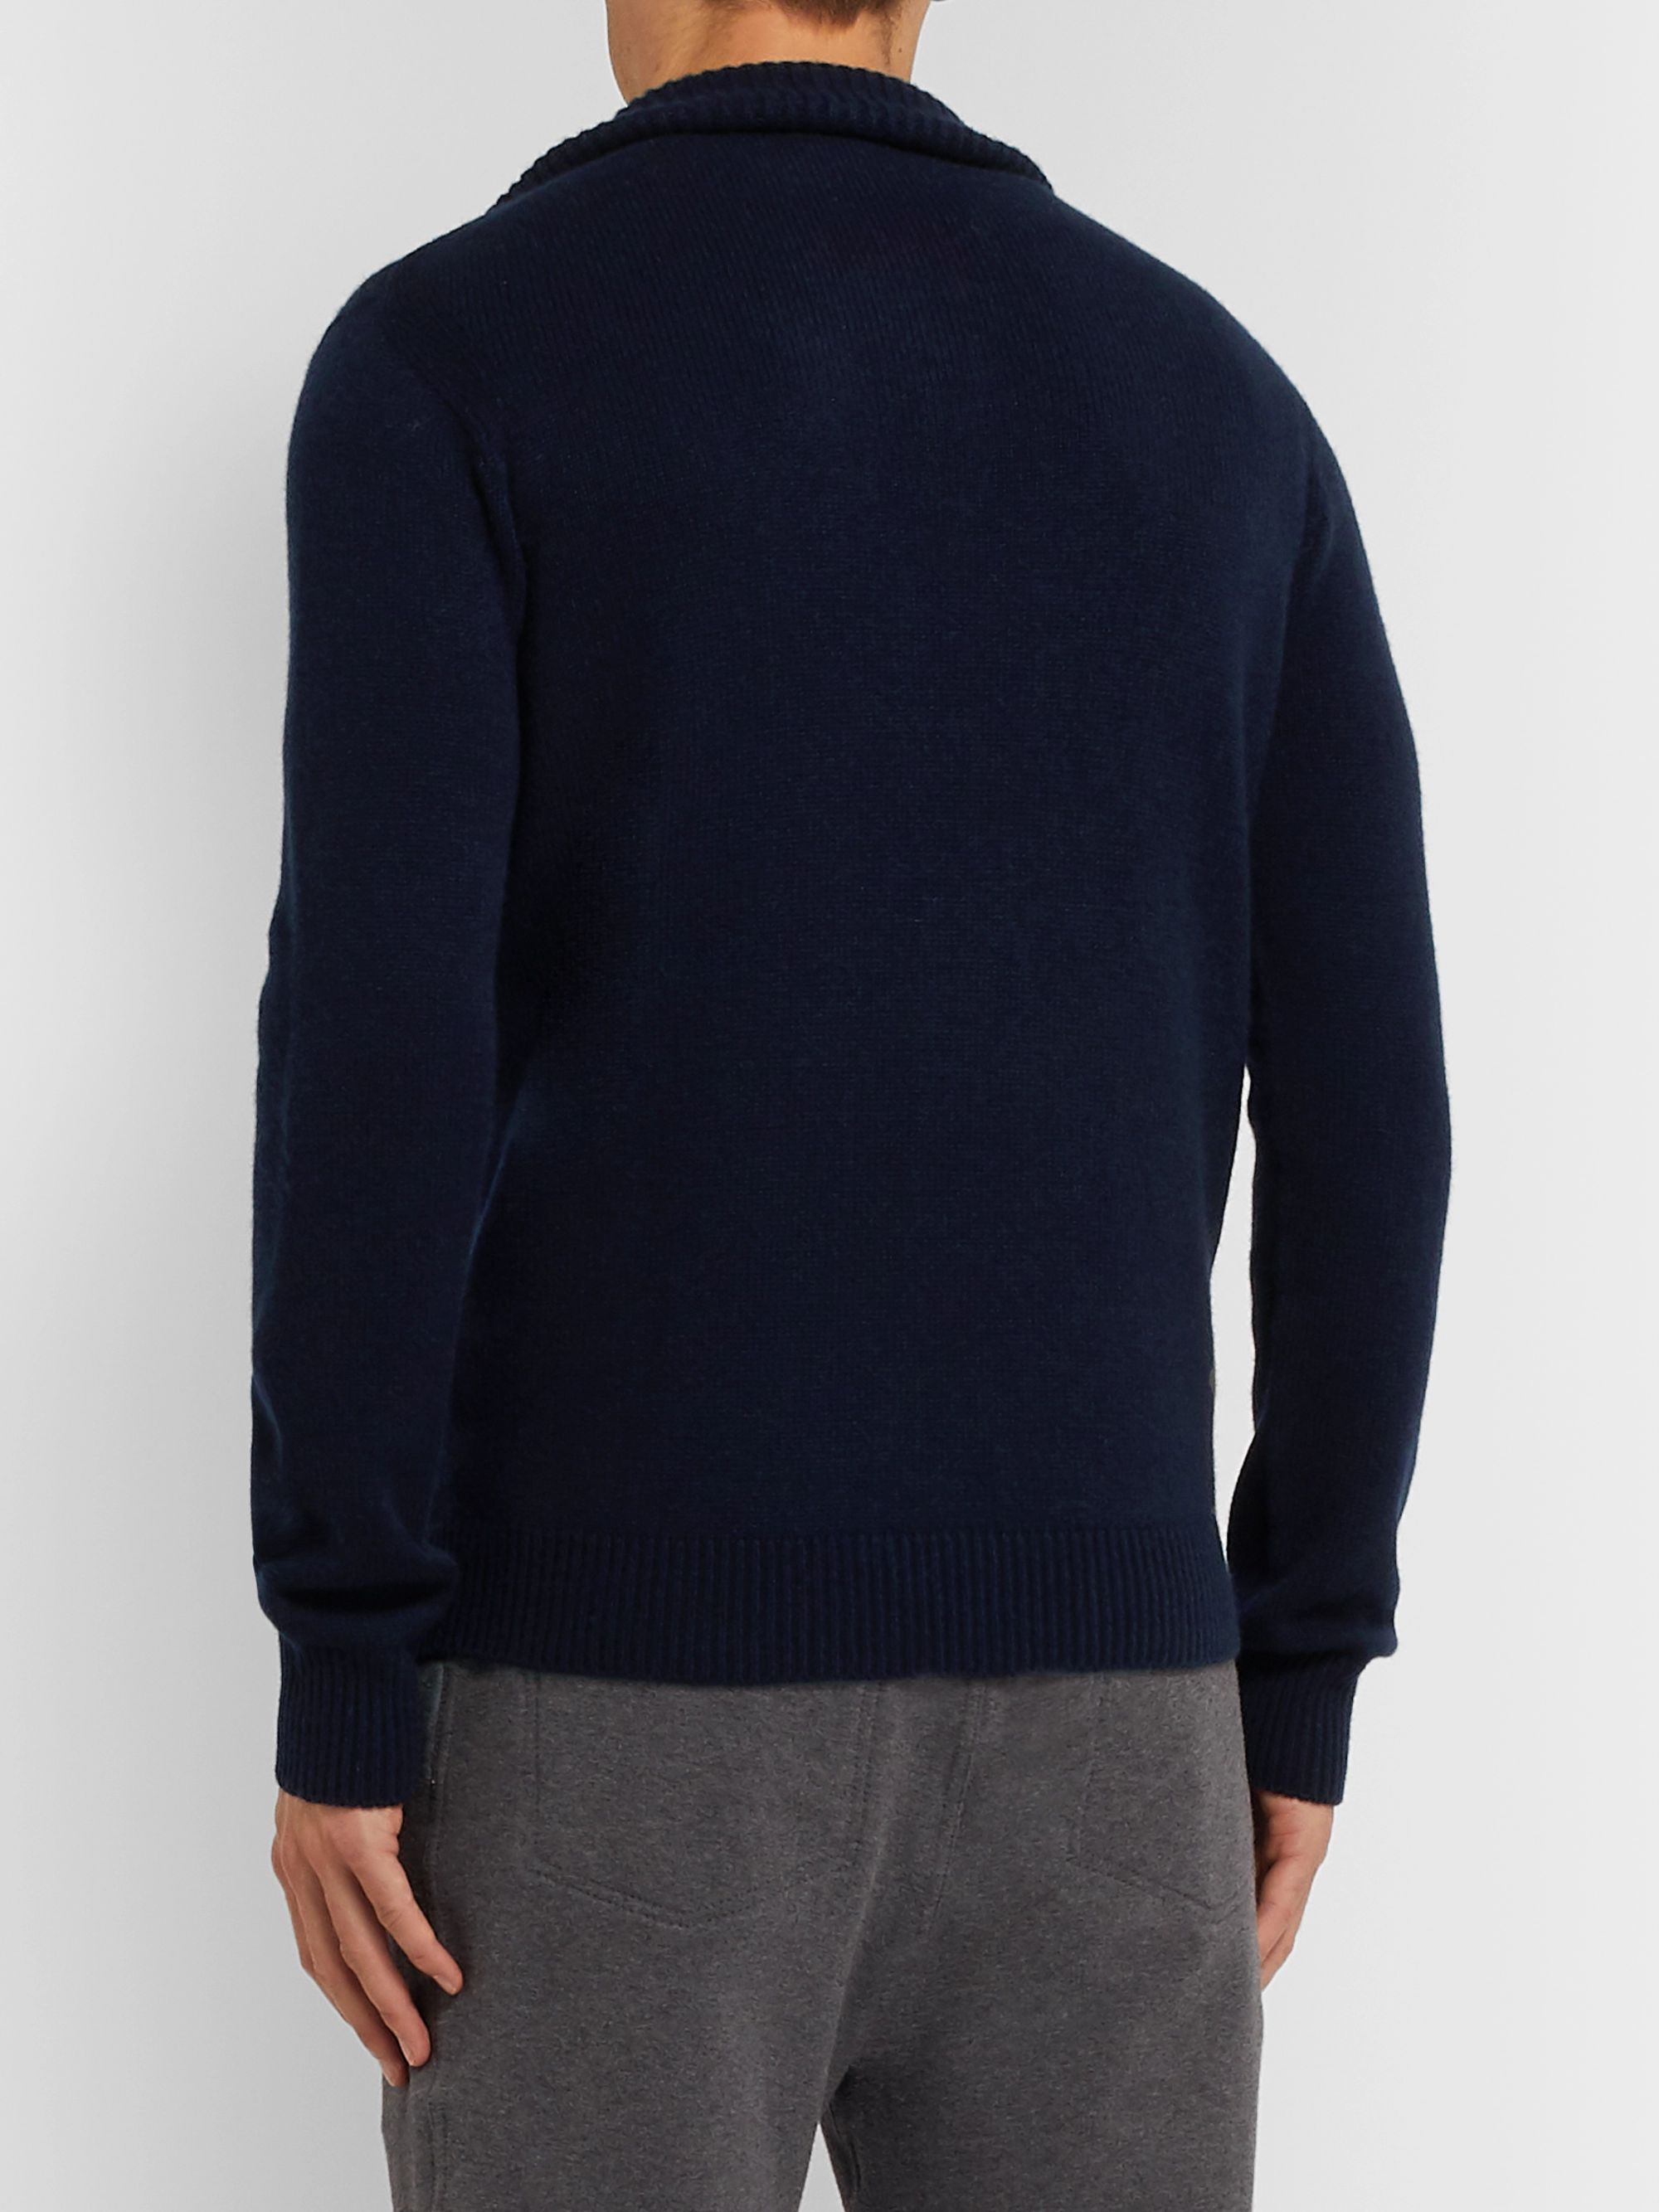 Brioni Leather-Trimmed Cashmere Half-Zip Sweater